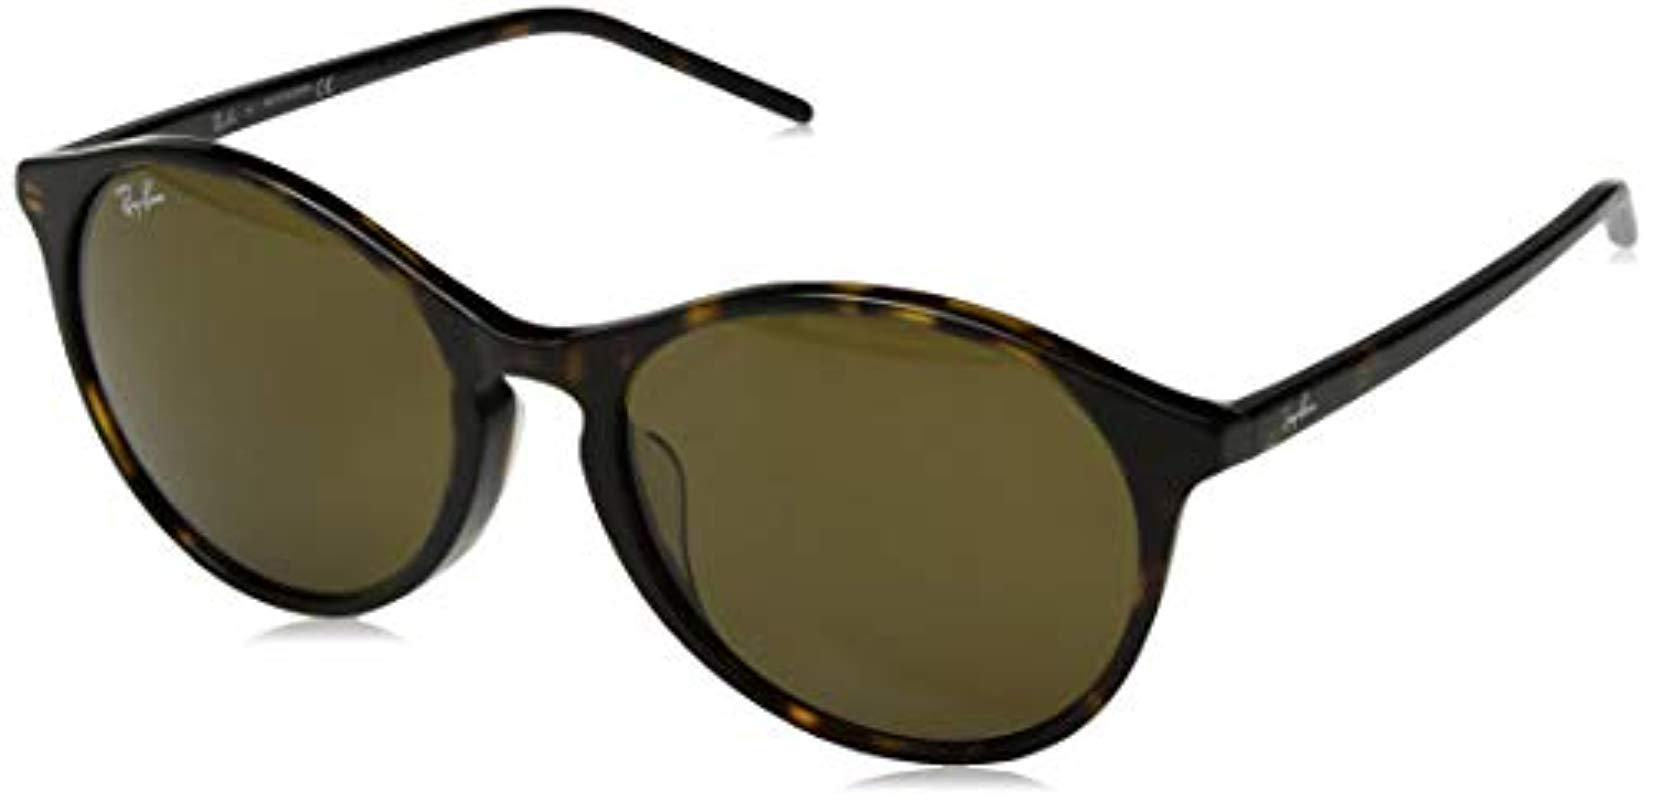 9db84db8a8a Lyst - Ray-Ban Rb4371f Sunglasses in Green - Save 20%